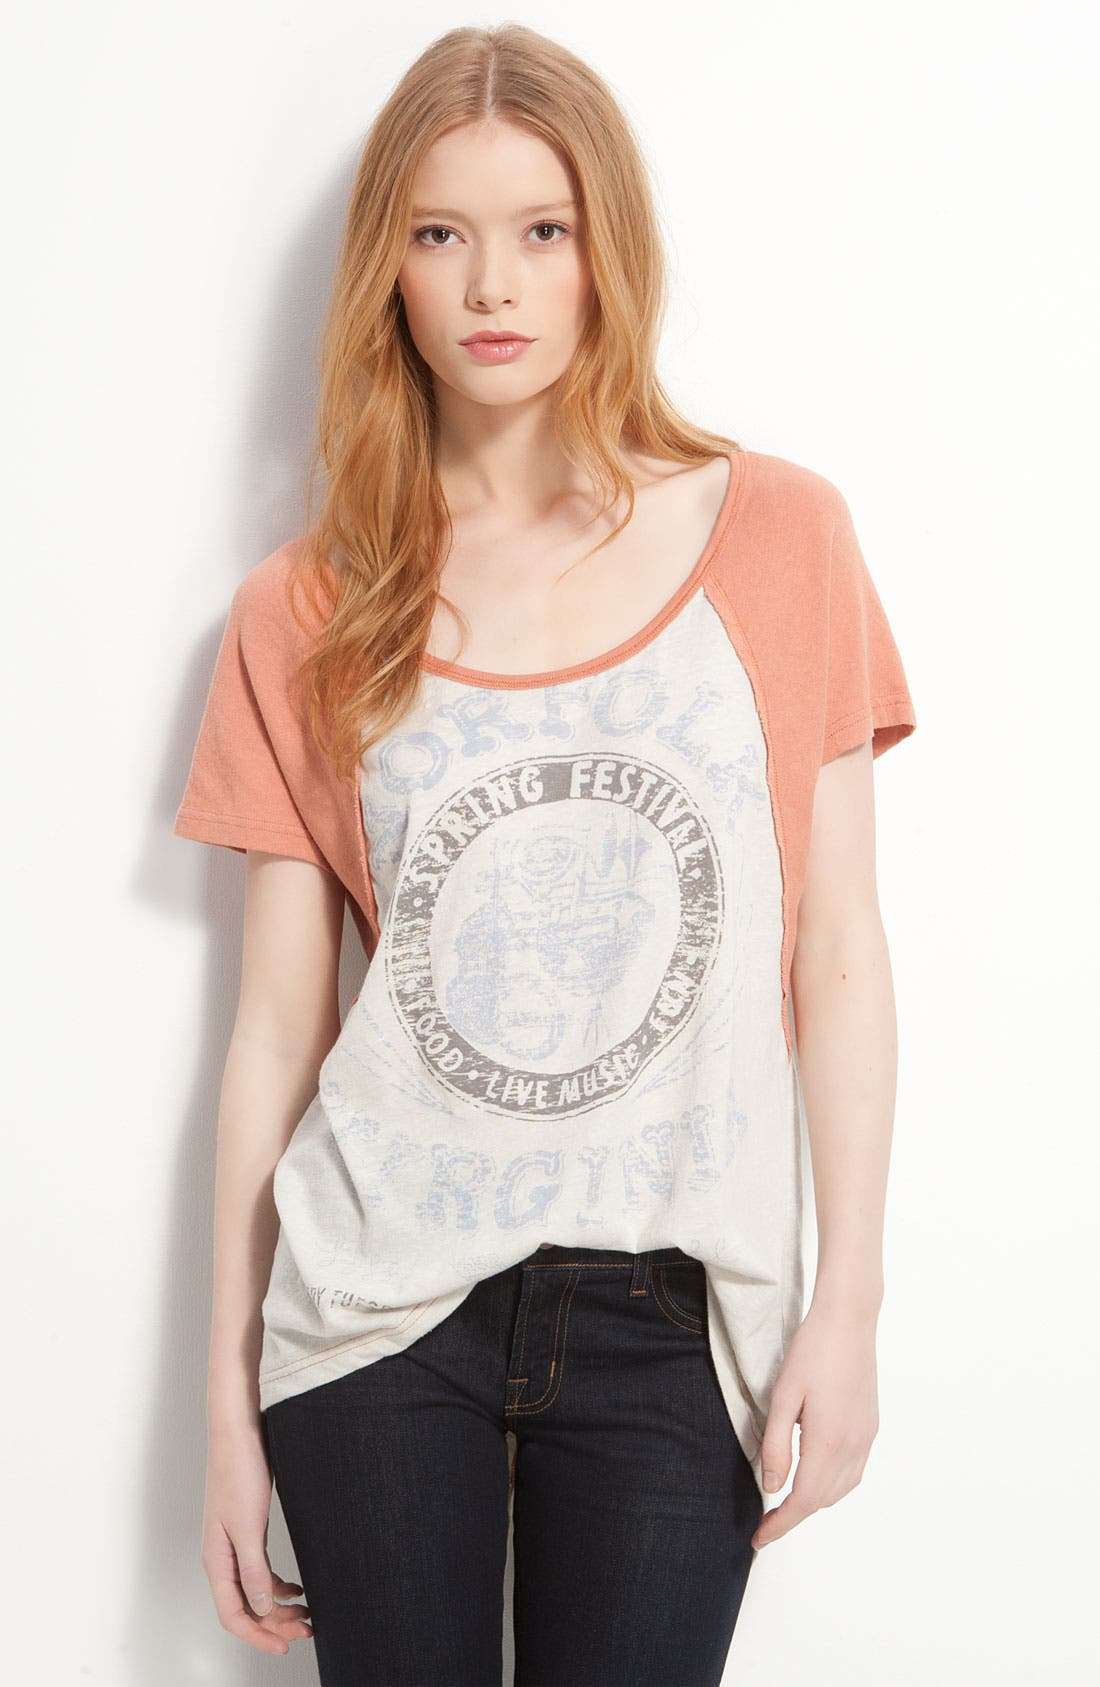 Alternate Image 1 Selected - Free People Vintage Festival Graphic Baseball Tee